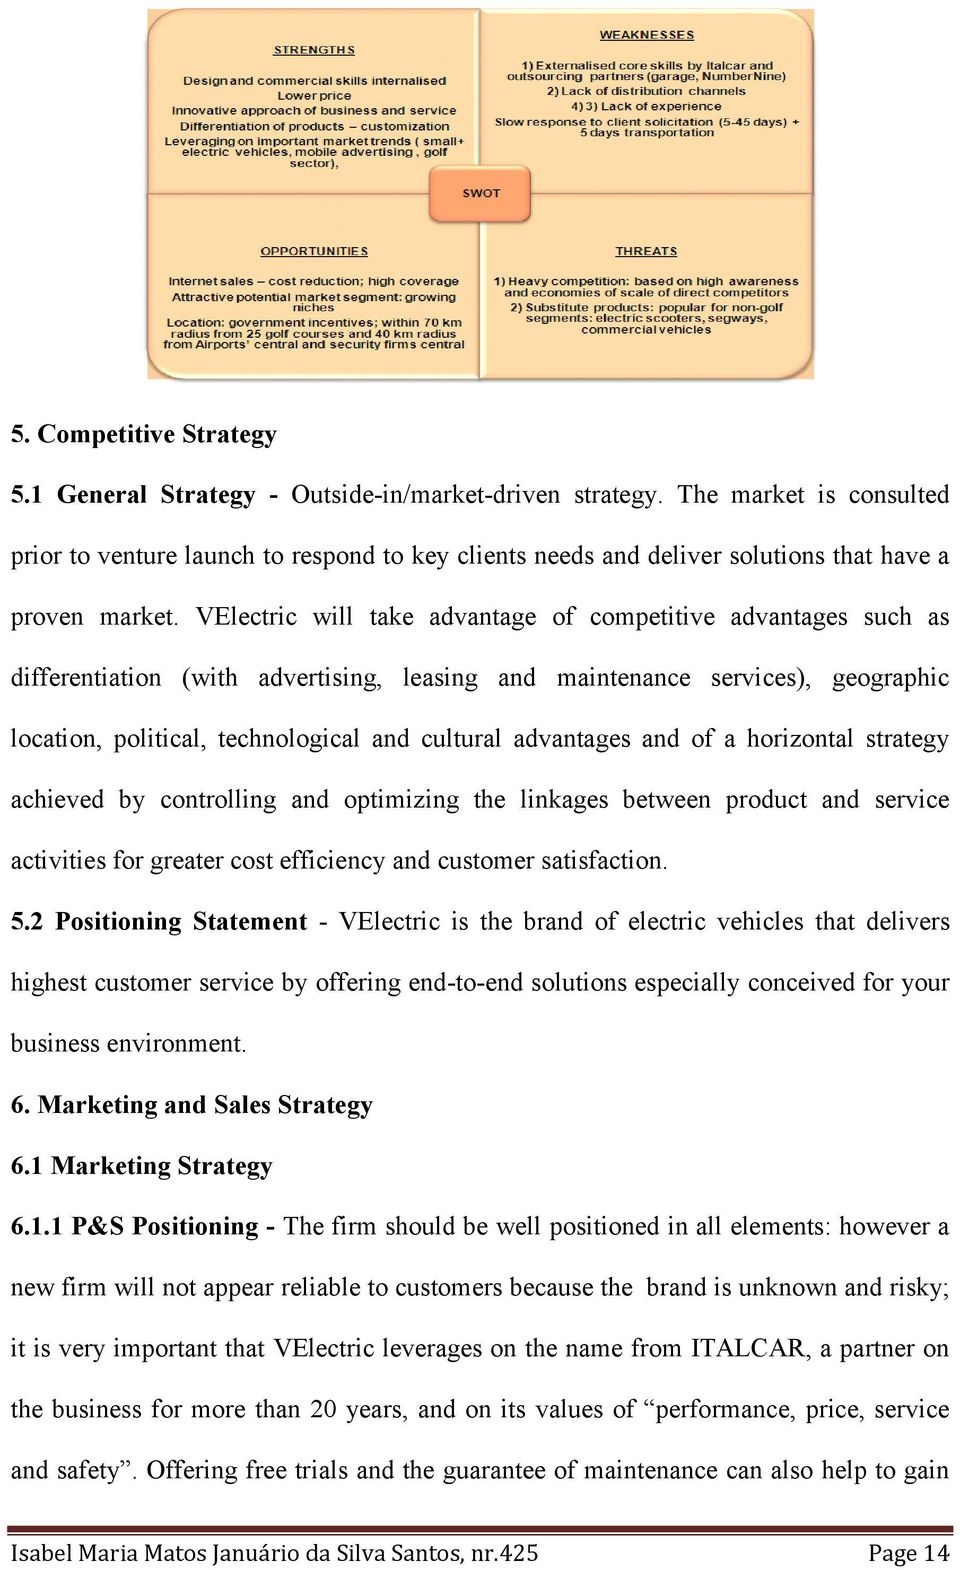 VElectric will take advantage of competitive advantages such as differentiation (with advertising, leasing and maintenance services), geographic location, political, technological and cultural